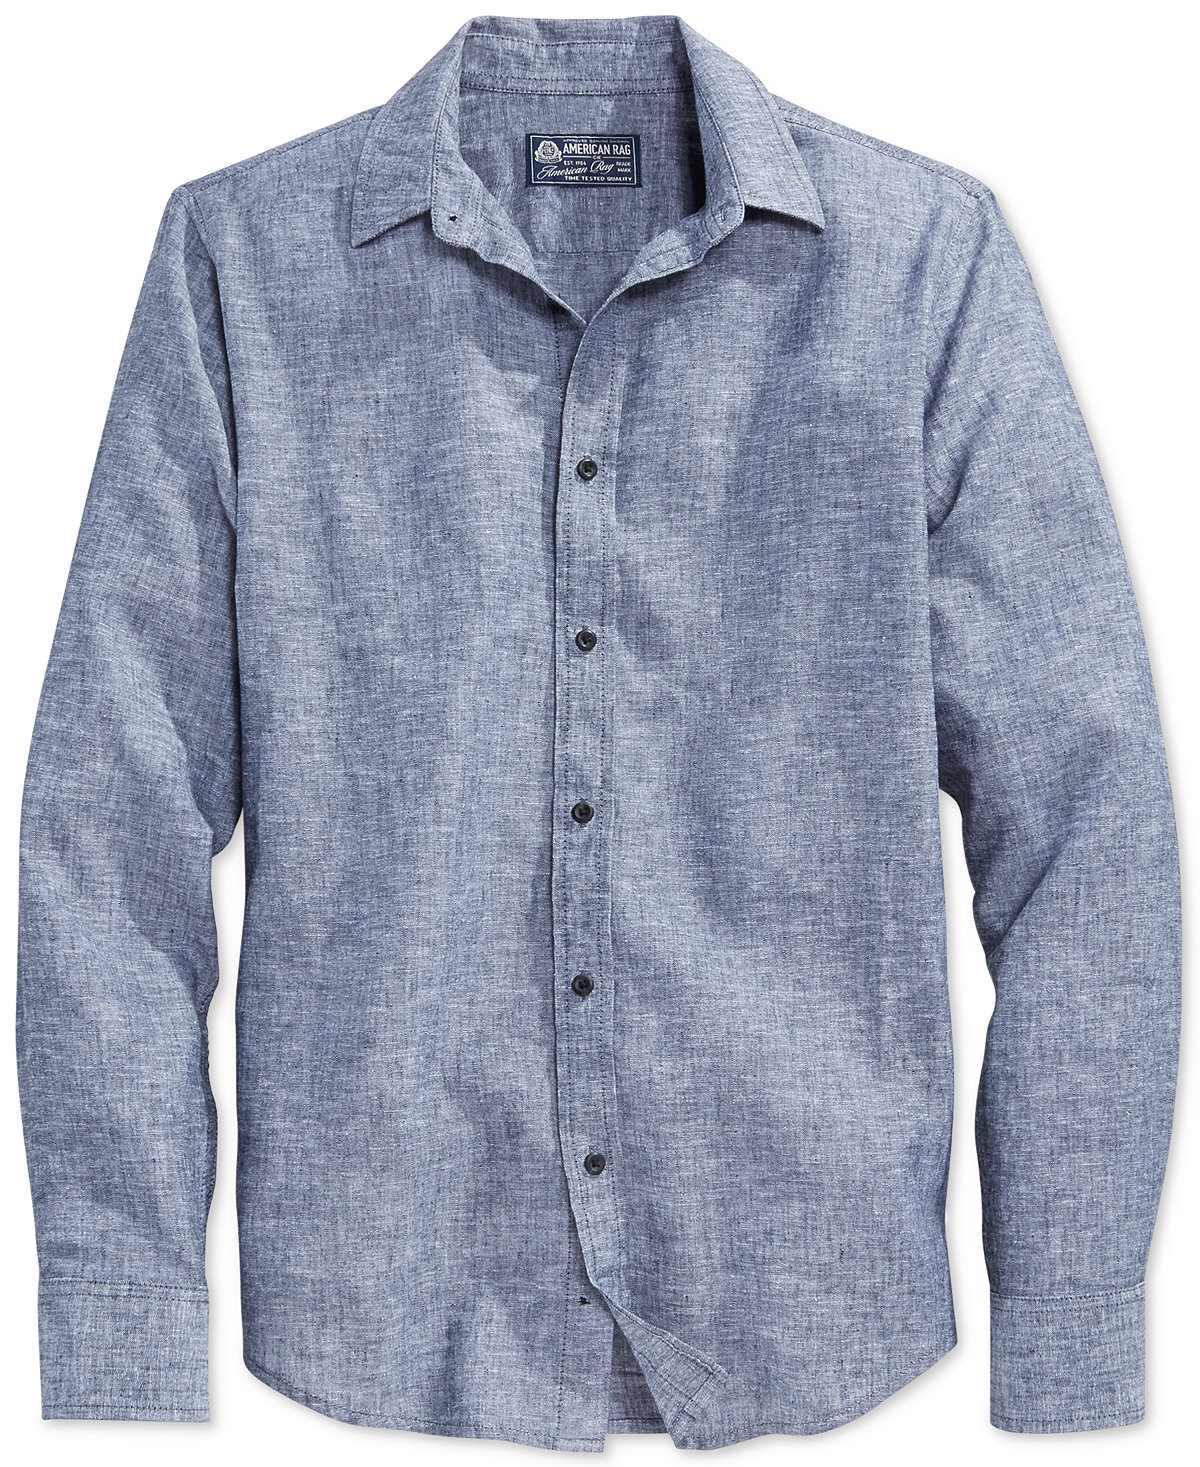 American Rag Men's Linen Shirt